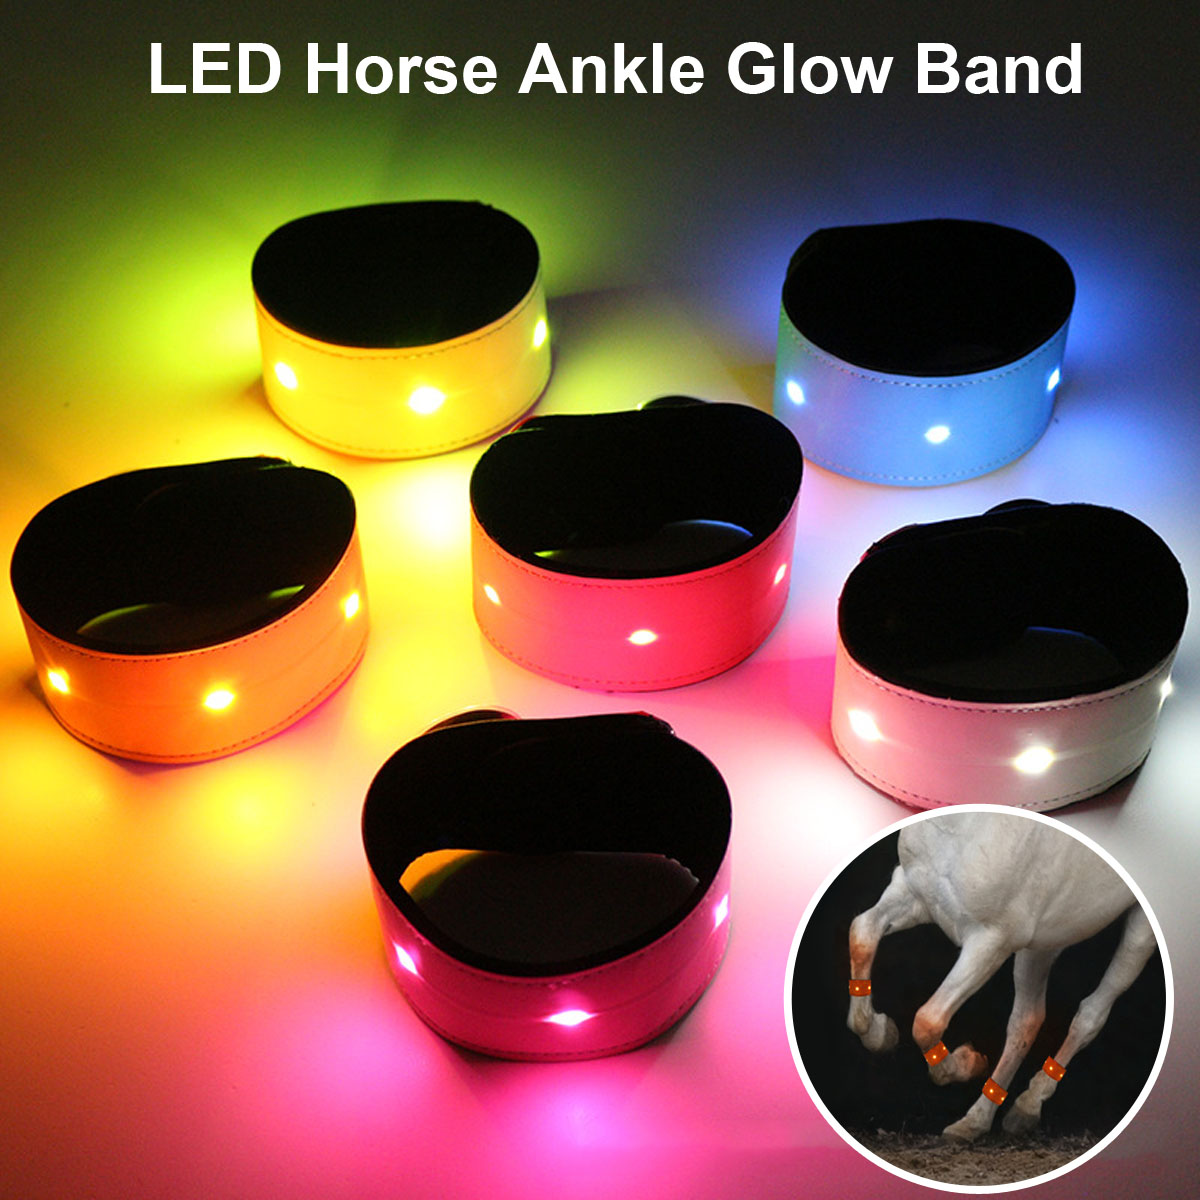 LED Horse Riding Equipment Harness Belt Colorful Lighting Horse Leg Straps Outdoor Sports Equestrian Supplies Cheval Accessories